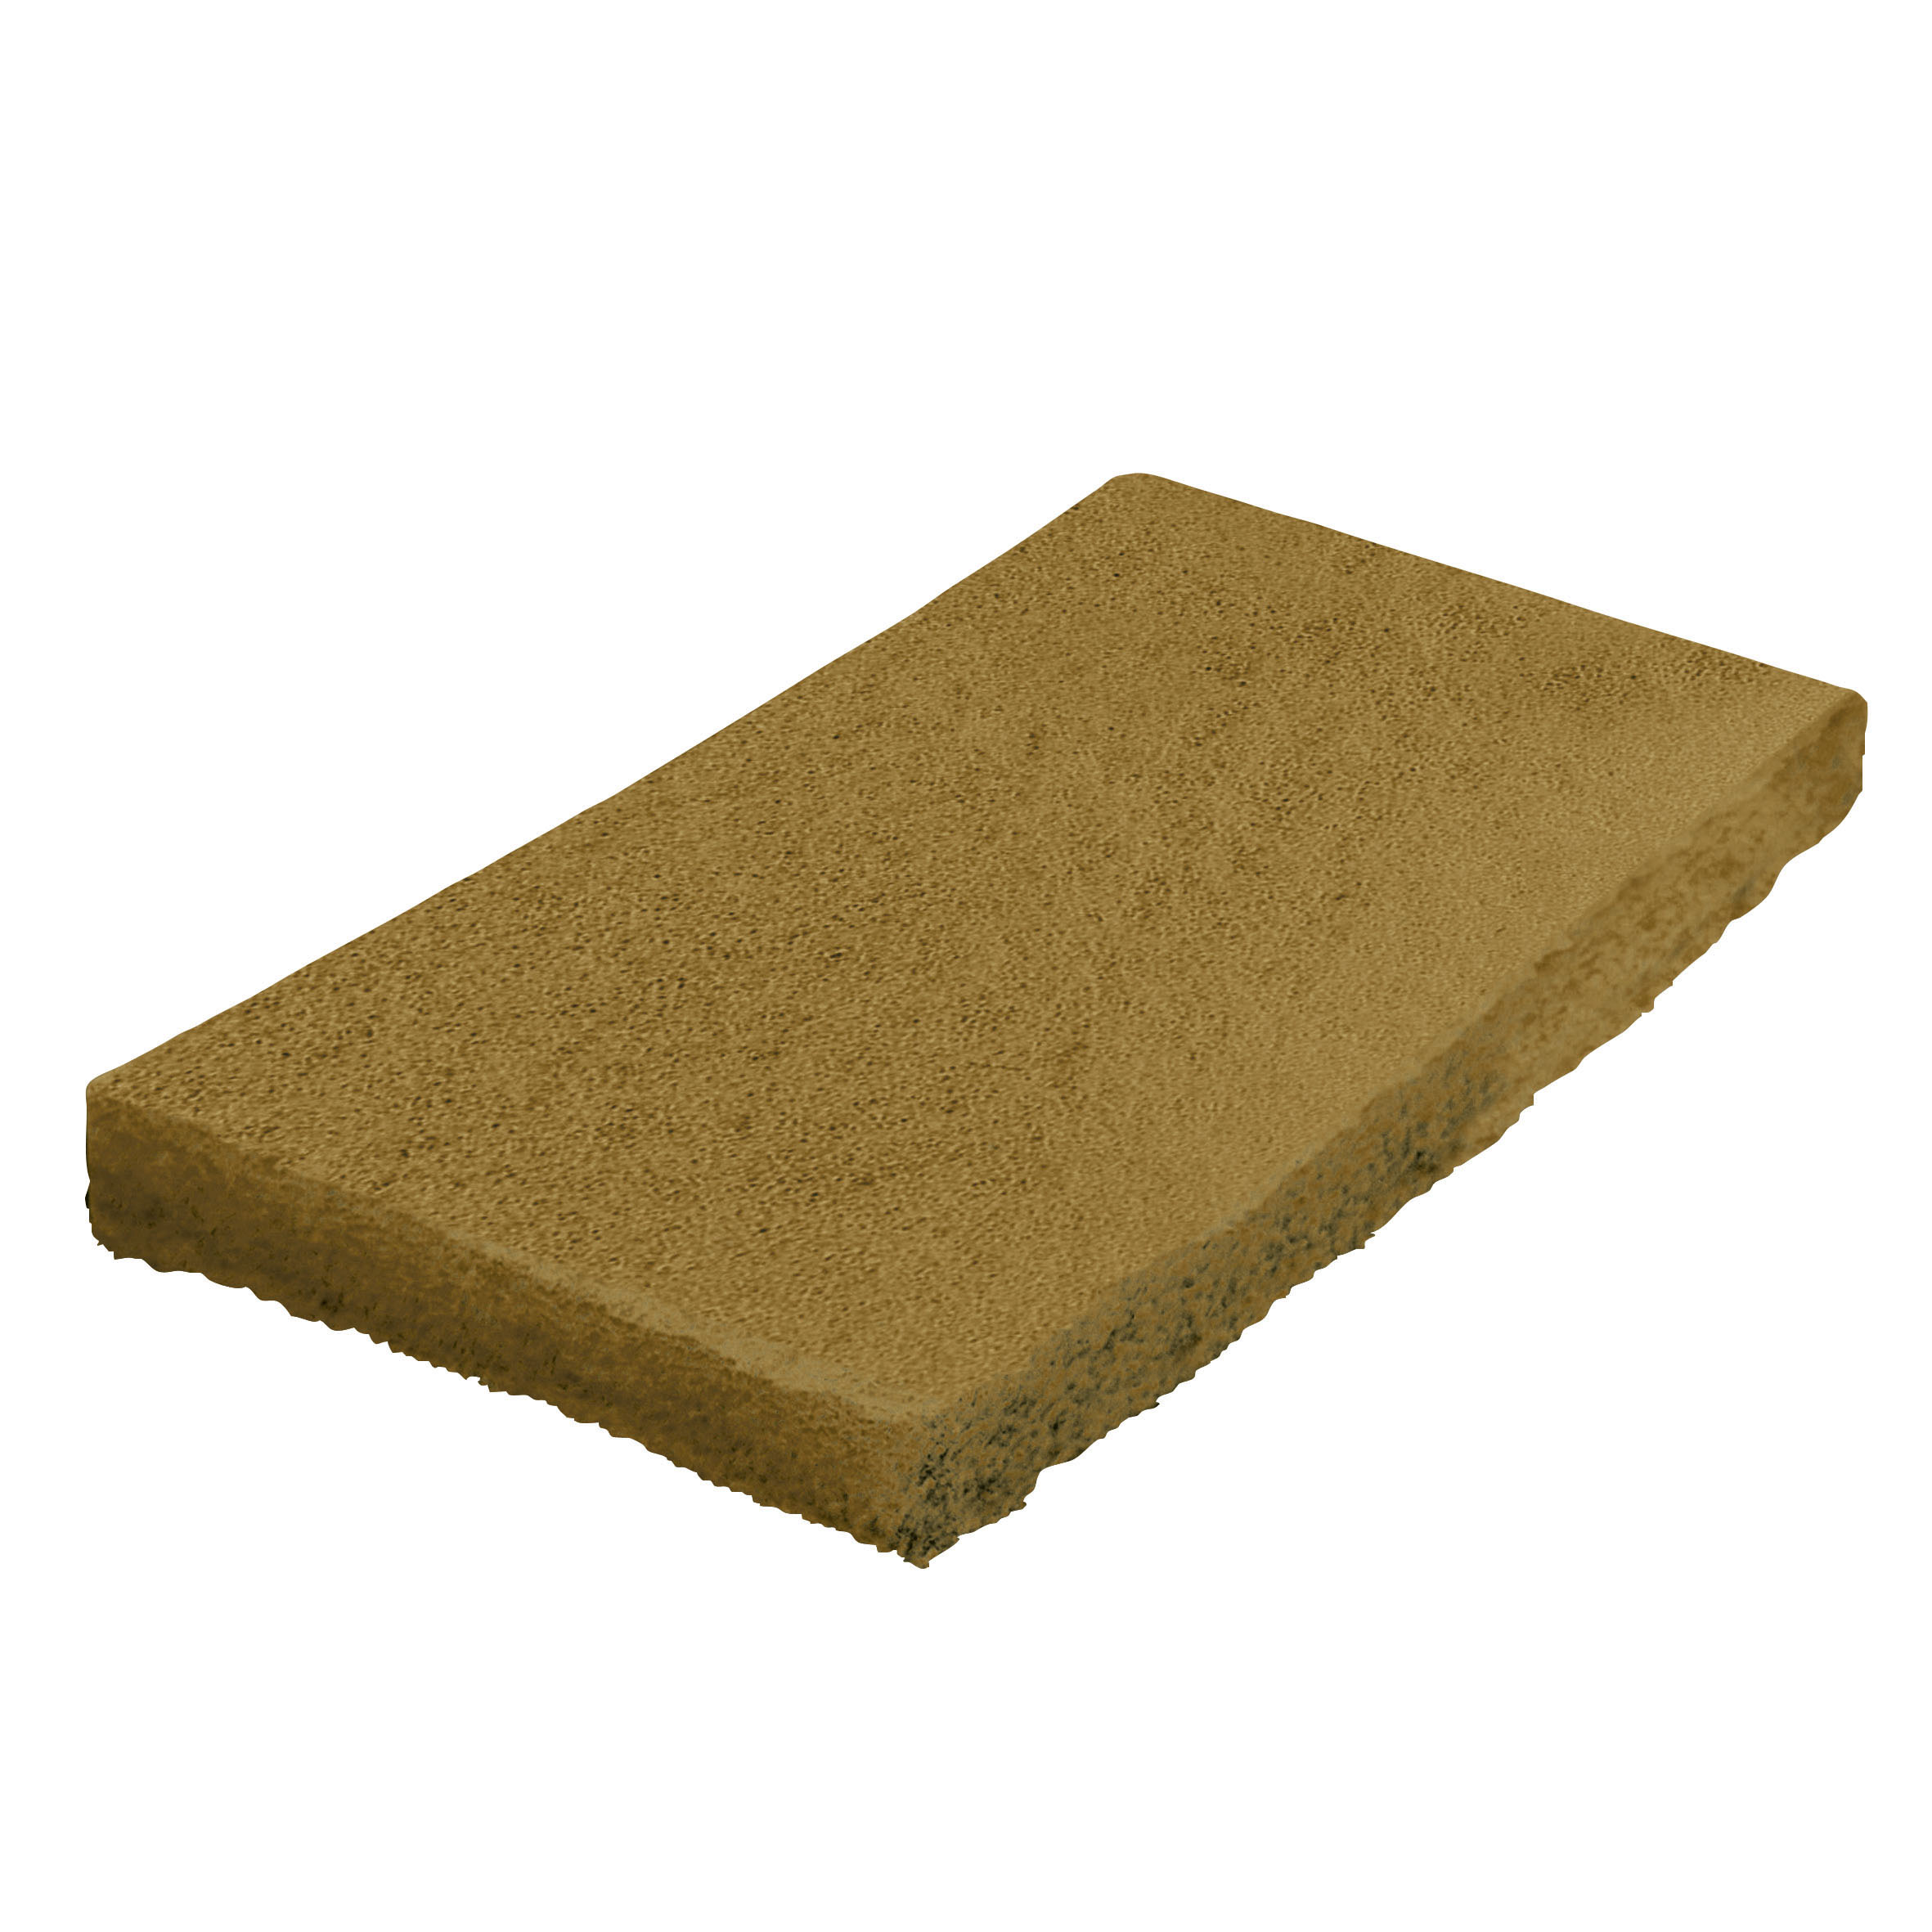 Super Handpad beige 250 x 115 x 25  mm